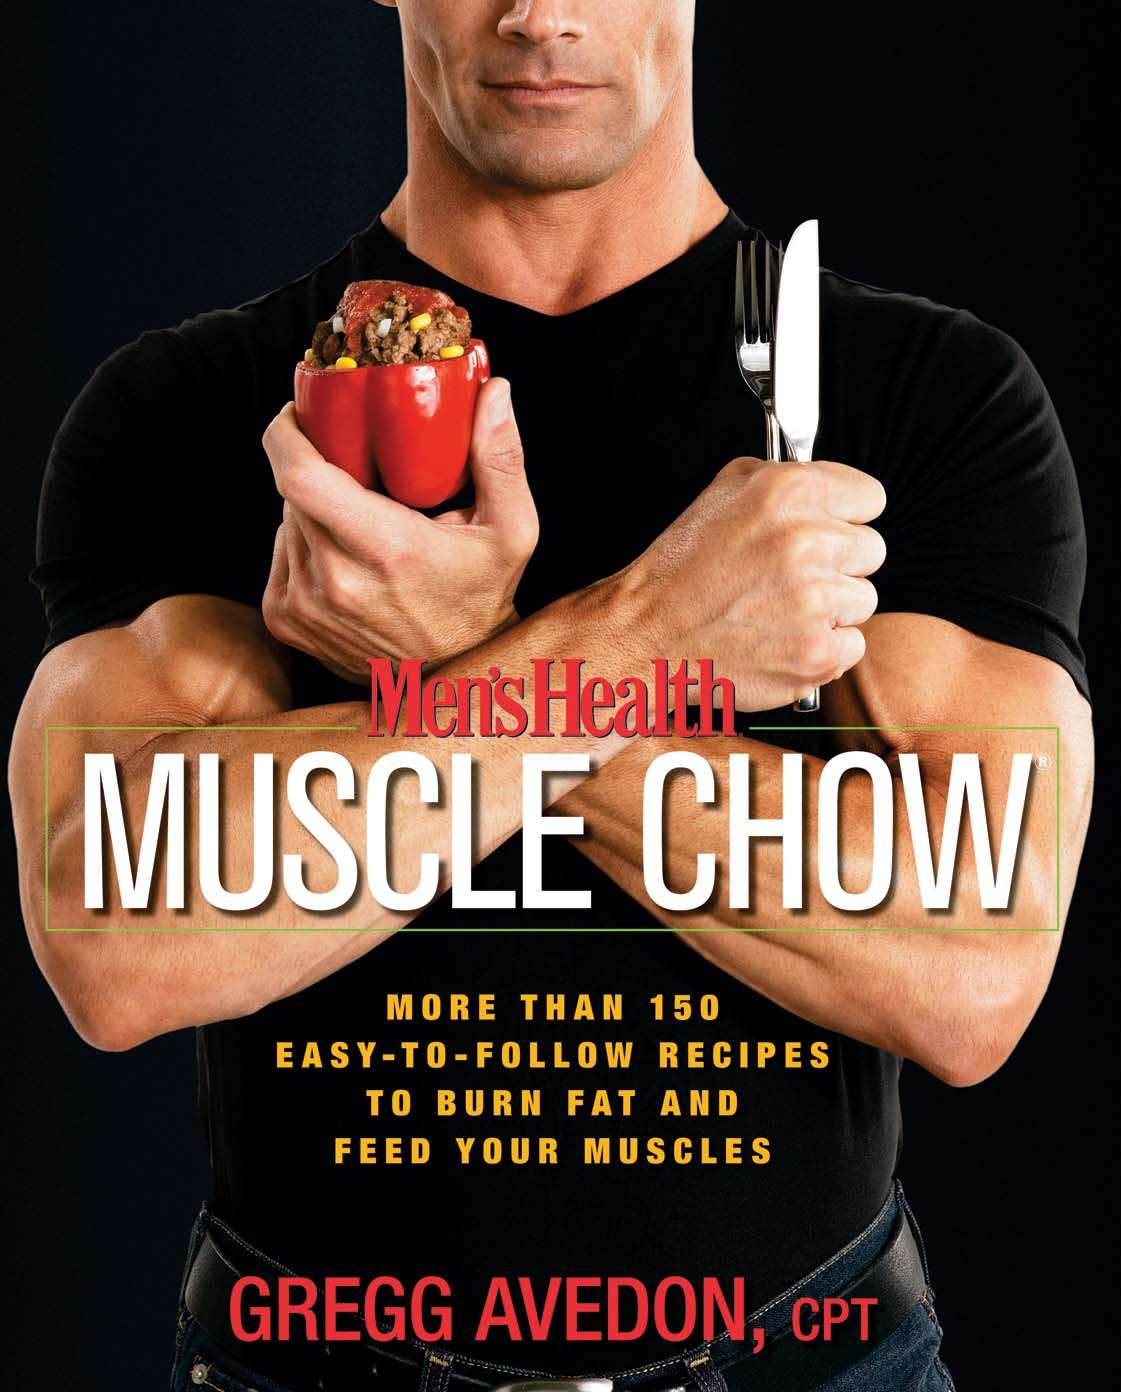 Men's Health Muscle Chow By: Gregg Avedon